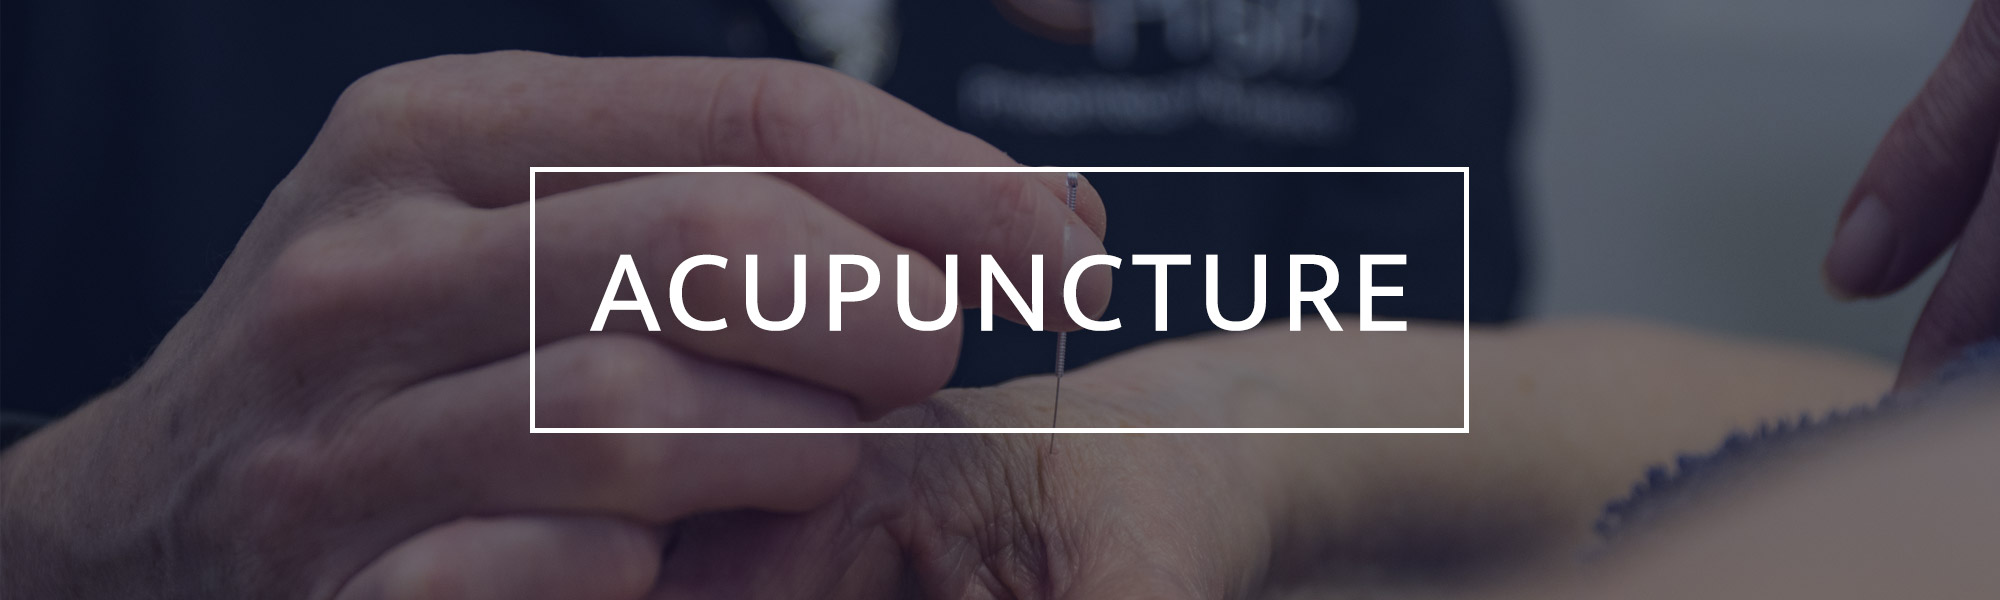 Acupunture in The Villages helps to improve your quality of life